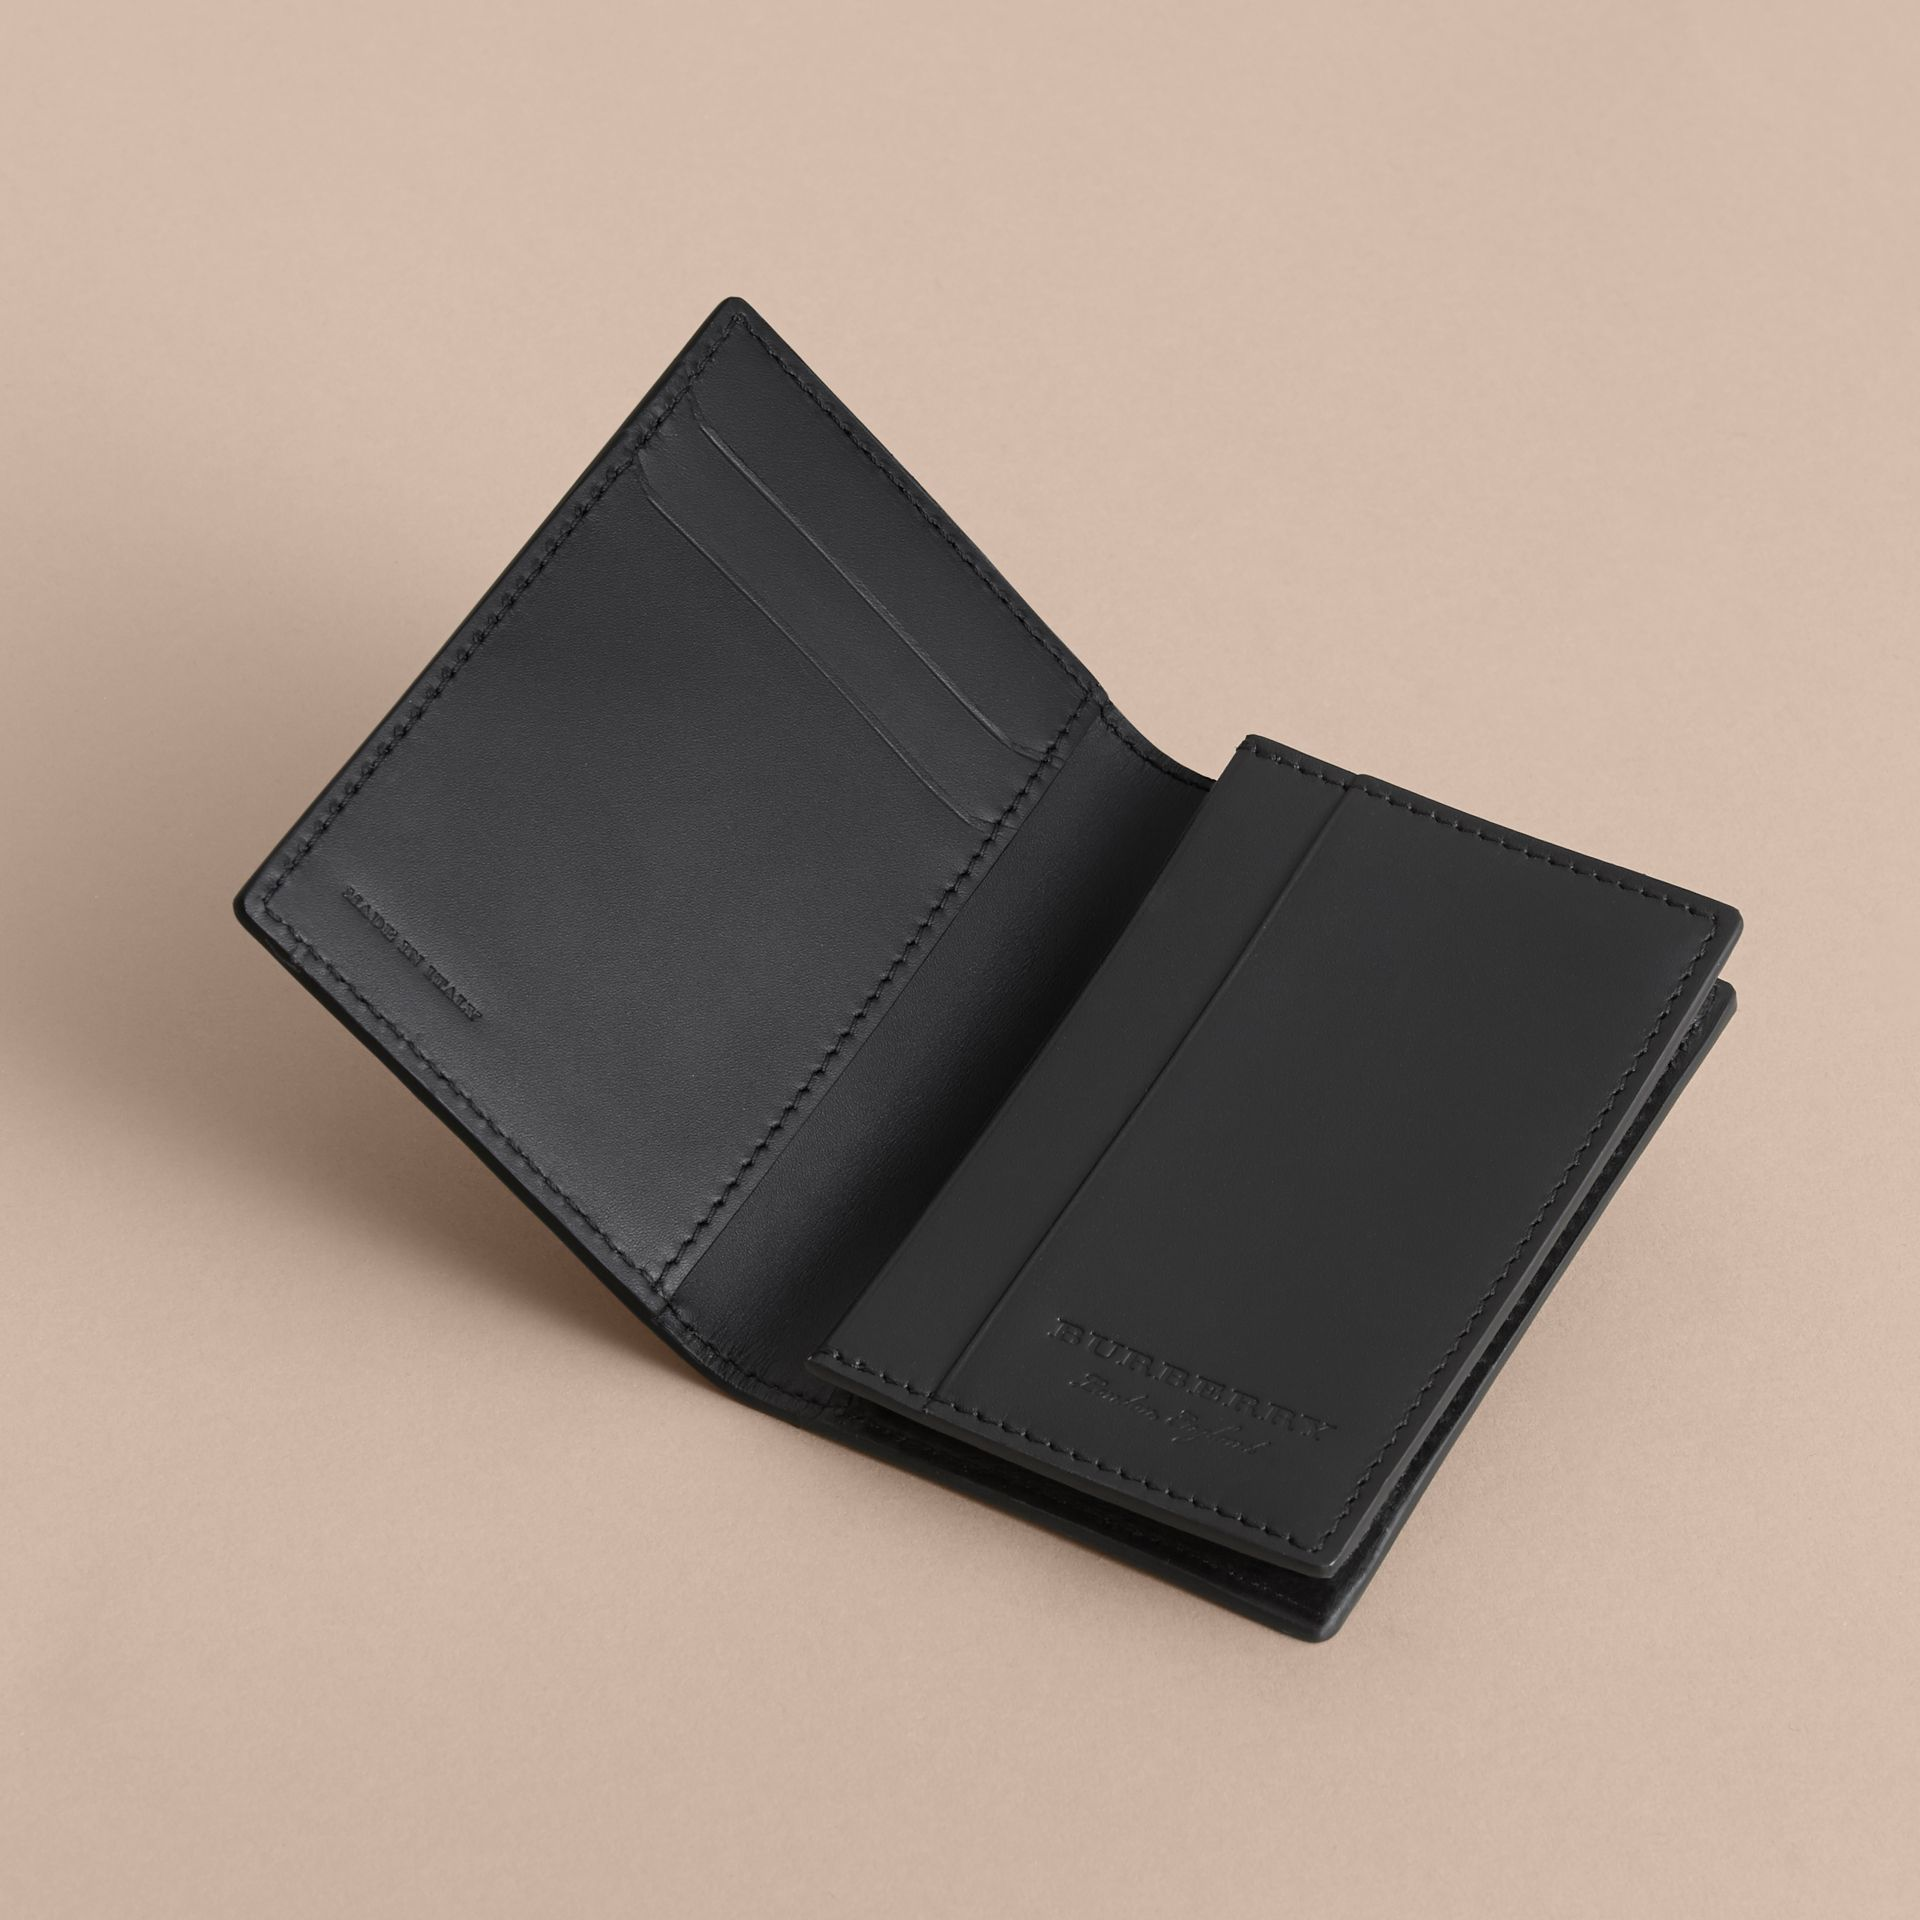 Trench Leather Folding Card Case in Black - Men | Burberry - gallery image 4